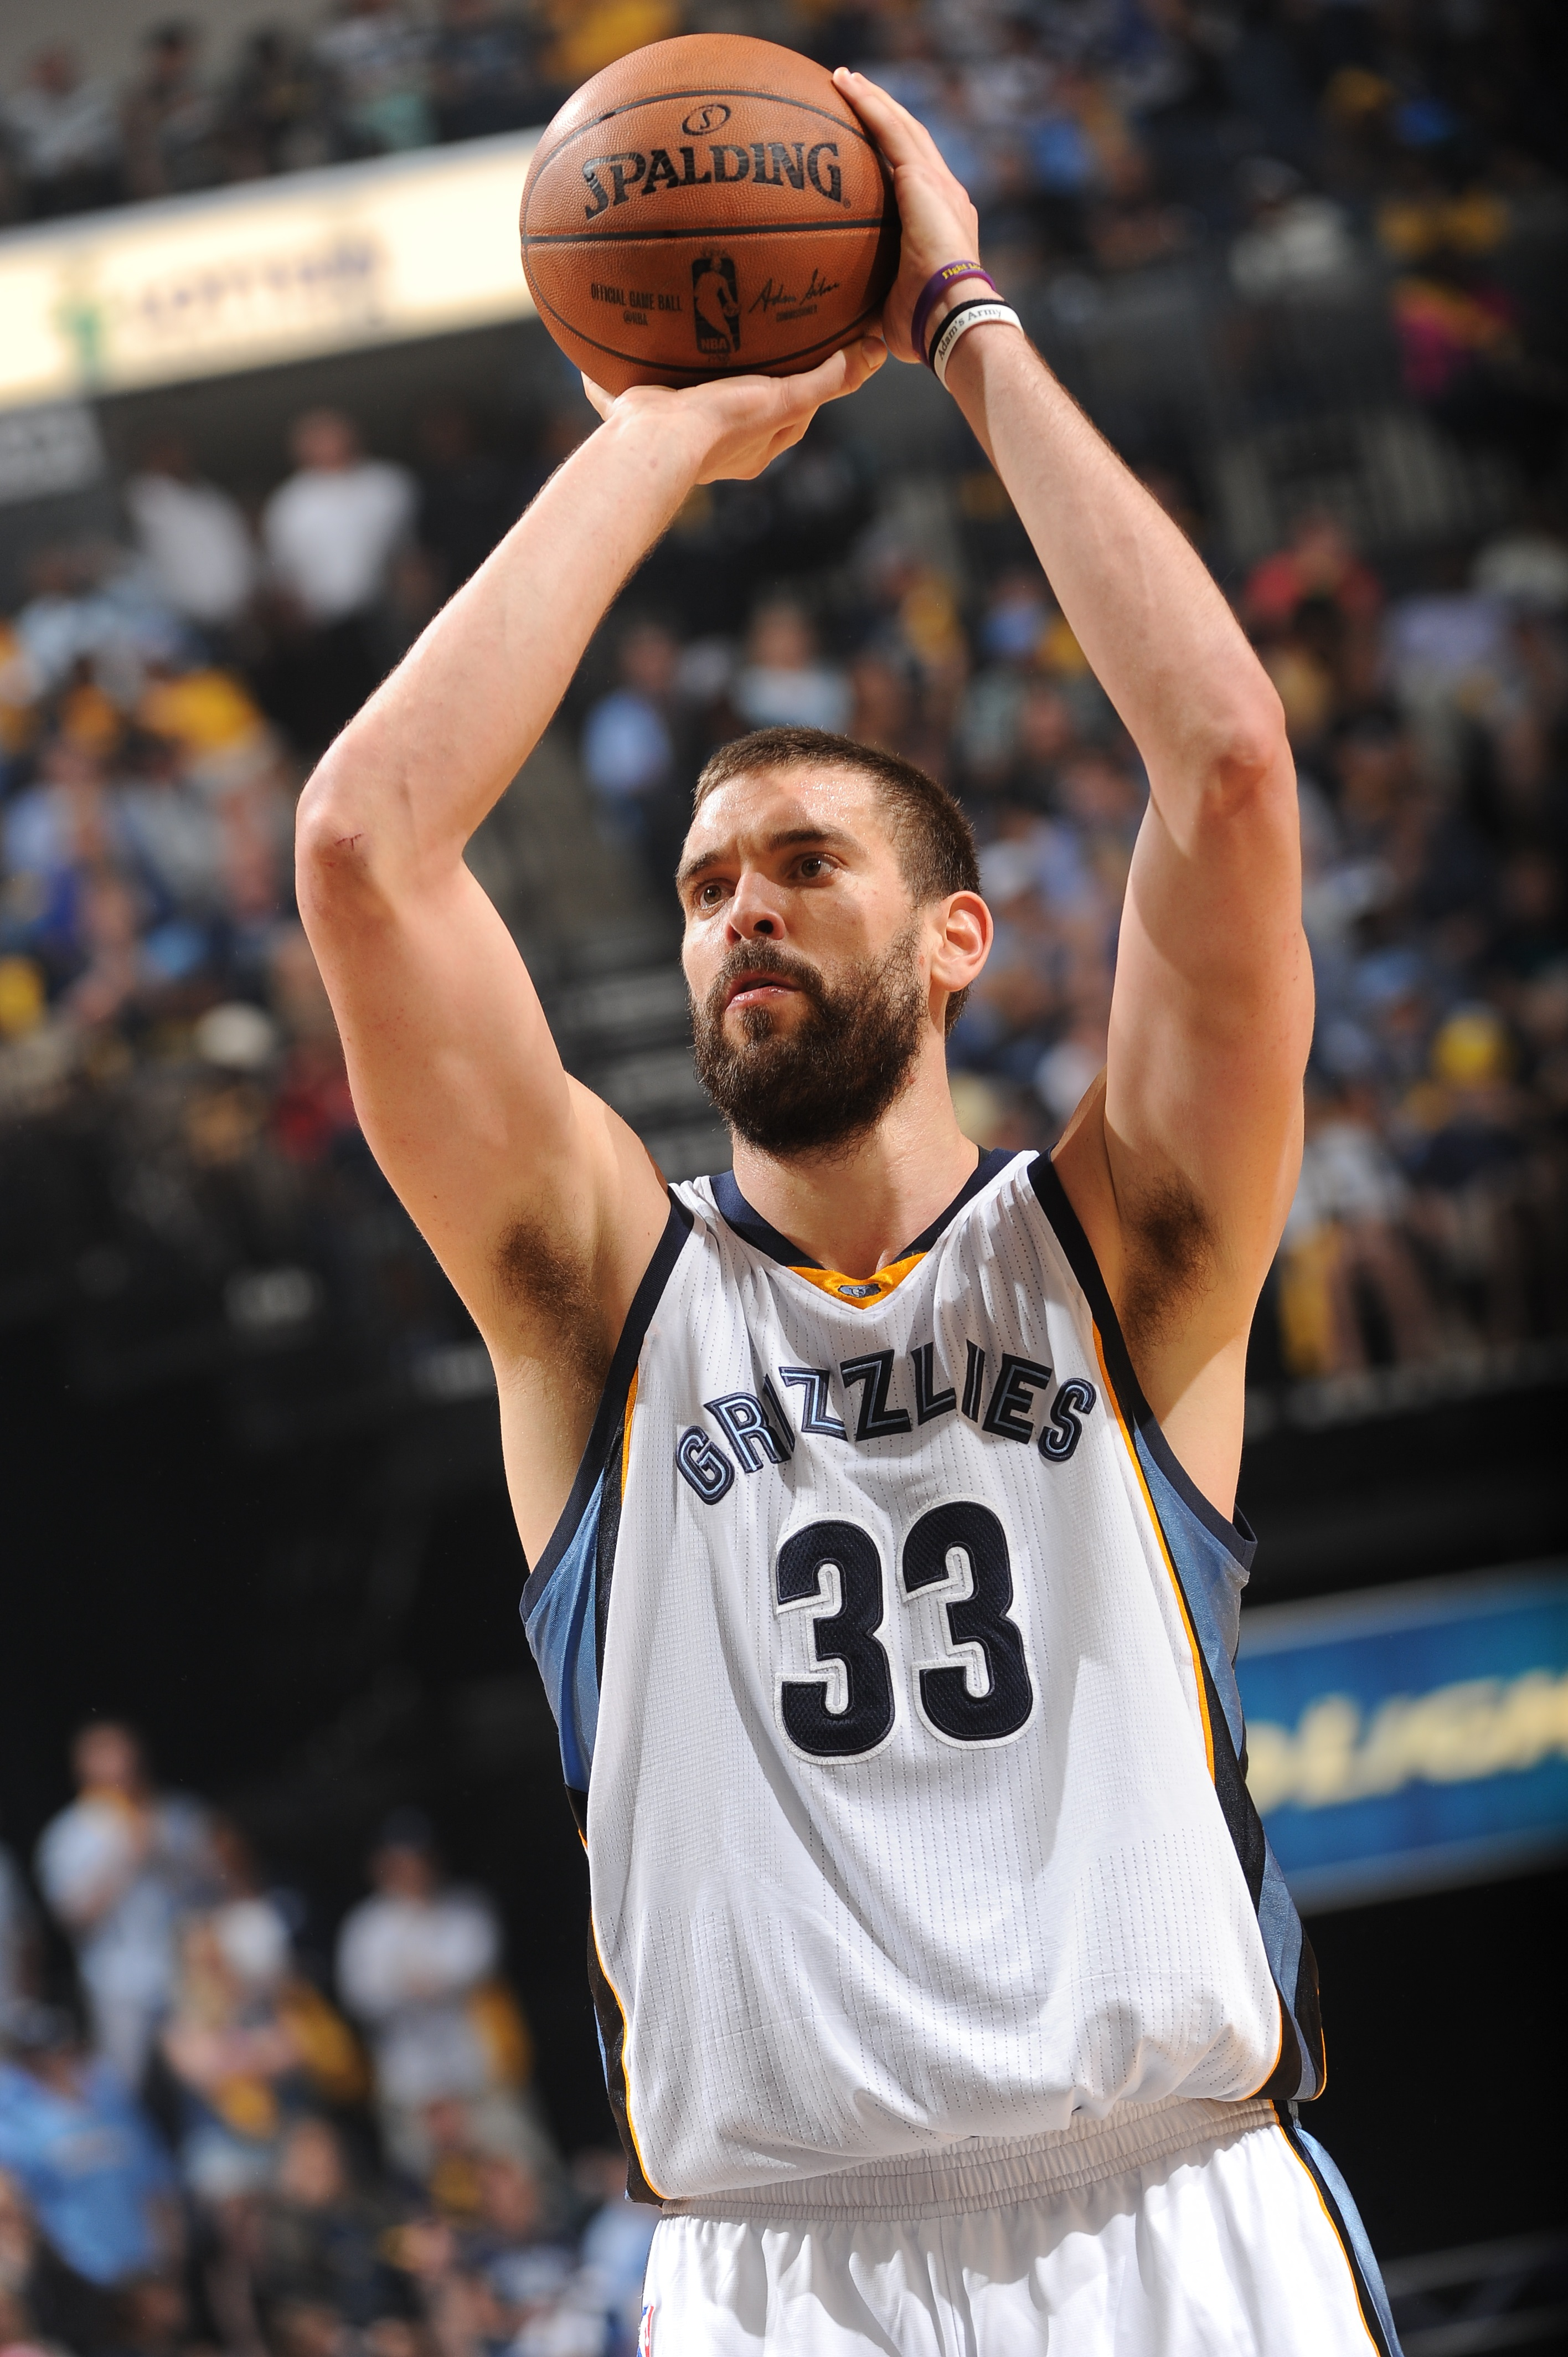 MEMPHIS, TN - MAY 15:  Marc Gasol #33 of the Memphis Grizzlies prepares to shoot a free throw against the Golden State Warriors in Game Six of the Western Conference Semifinals during the 2015 NBA Playoffs on May 15, 2015 at the FedExForum in Memphis, Ten